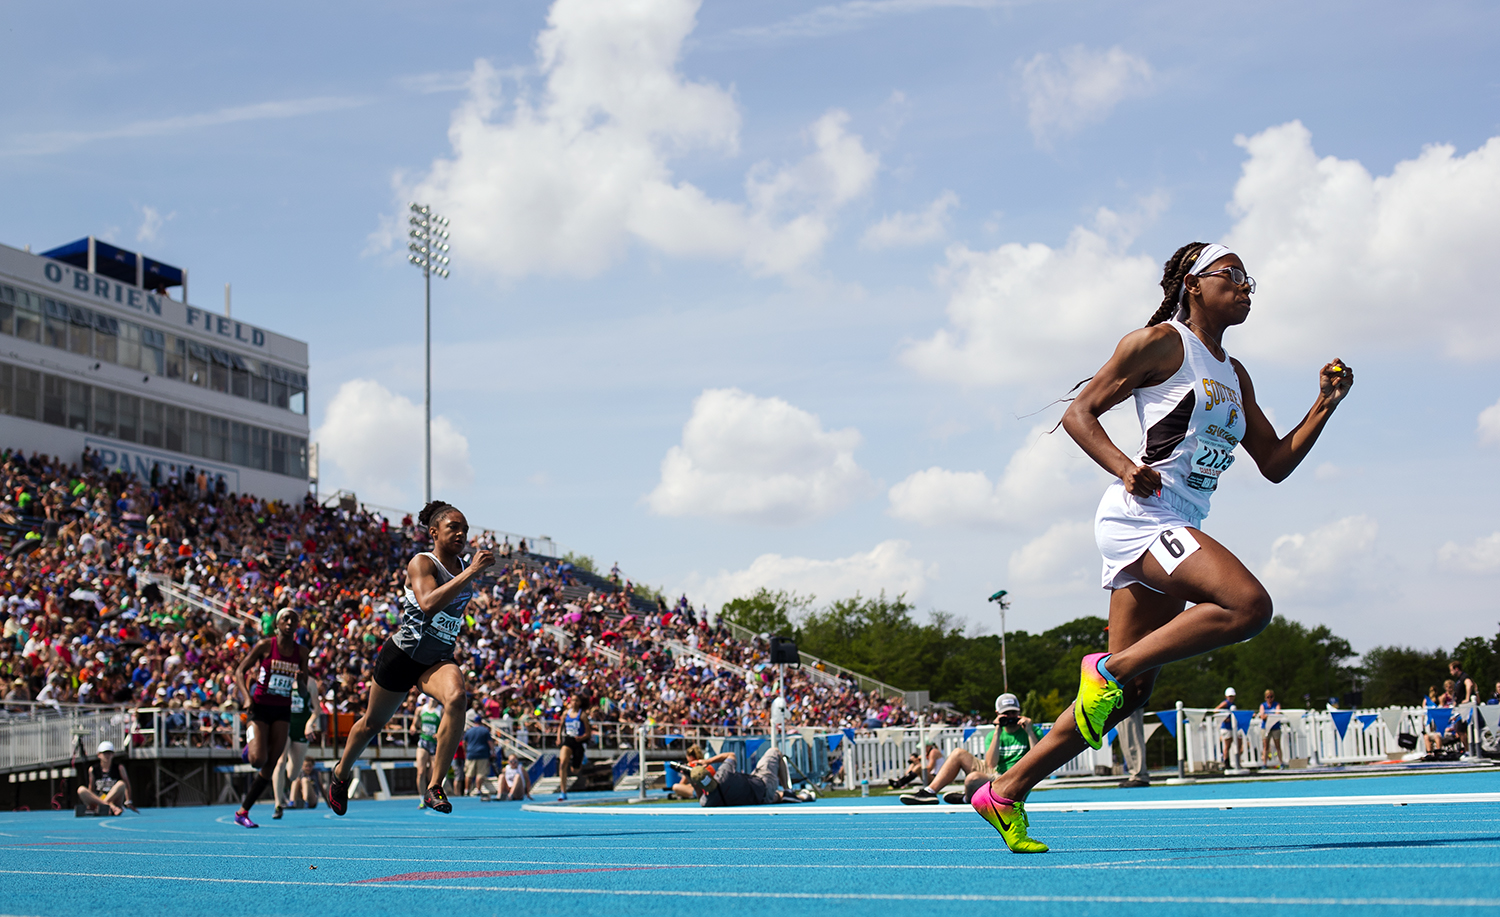 Southeast's Raven Moore takes off in the 400 meter dash during IHSA Track and Field State Finals at O'Brien Field in Charleston, Ill., Saturday, May 19, 2018. Moore finished second. [Ted Schurter/The State Journal-Register]